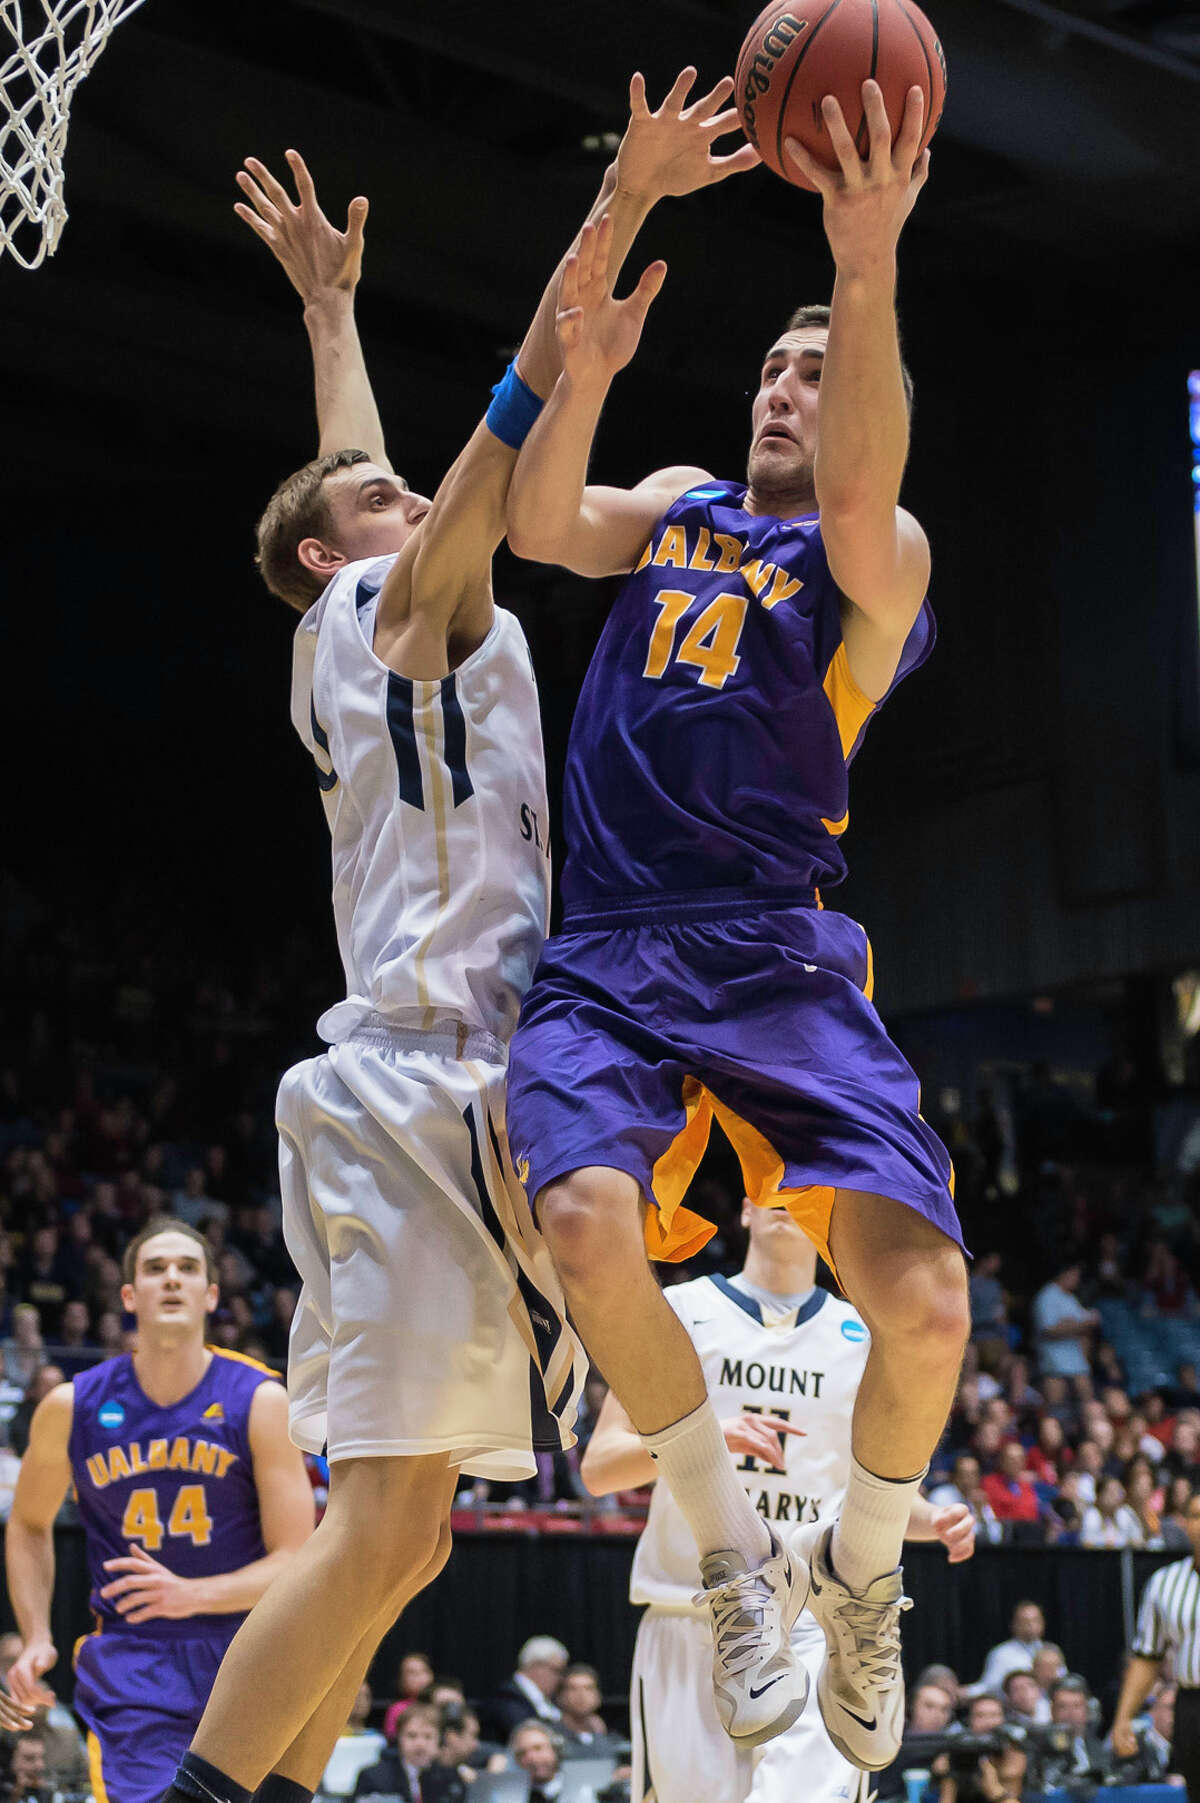 UAlbany Great Danes forward Sam Rowley (14) right puts up a shot from the paint with Mount St Mary's Mountaineers center Taylor Danaher (50) left defending during the NCAA first round game, Tuesday night, Mar. 18, 2014, in Dayton, O.H. (Gregory Fisher/Special to the Times Union)